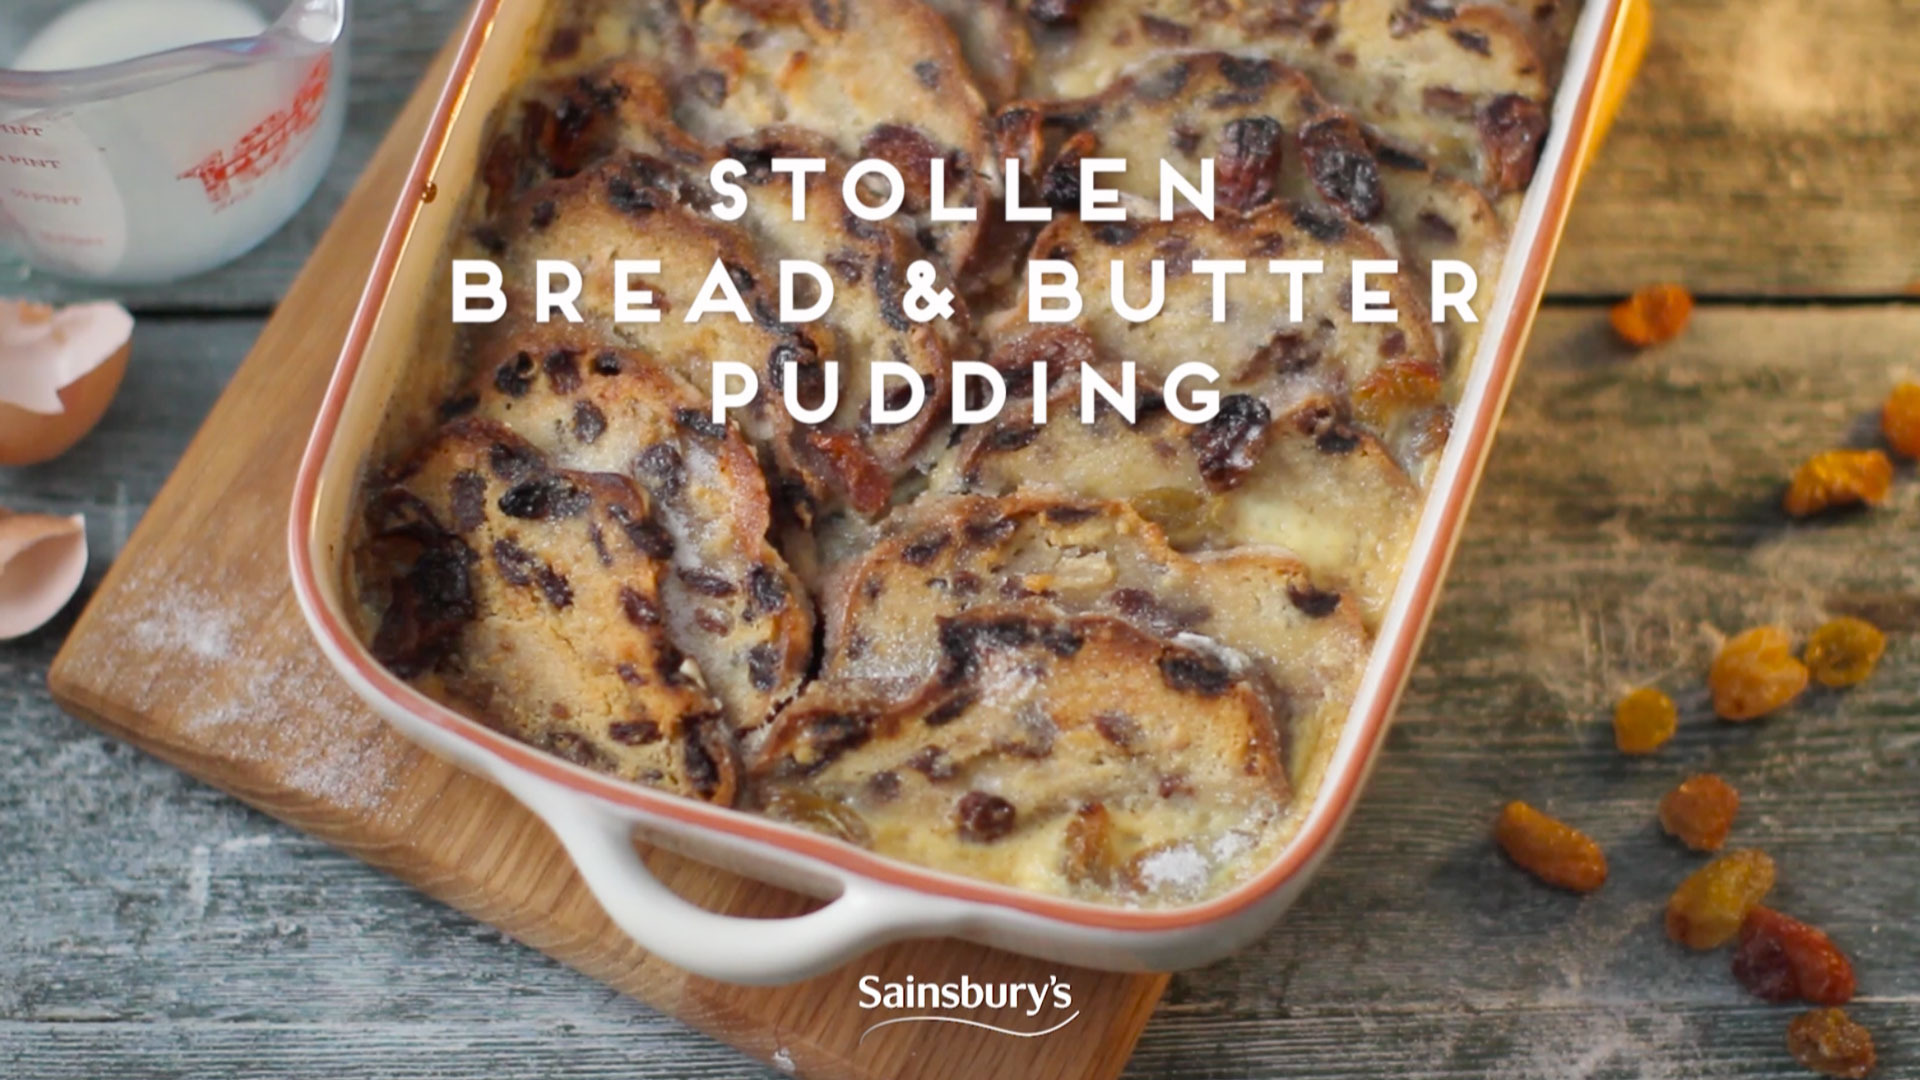 Stollen Bread & Butter Pudding